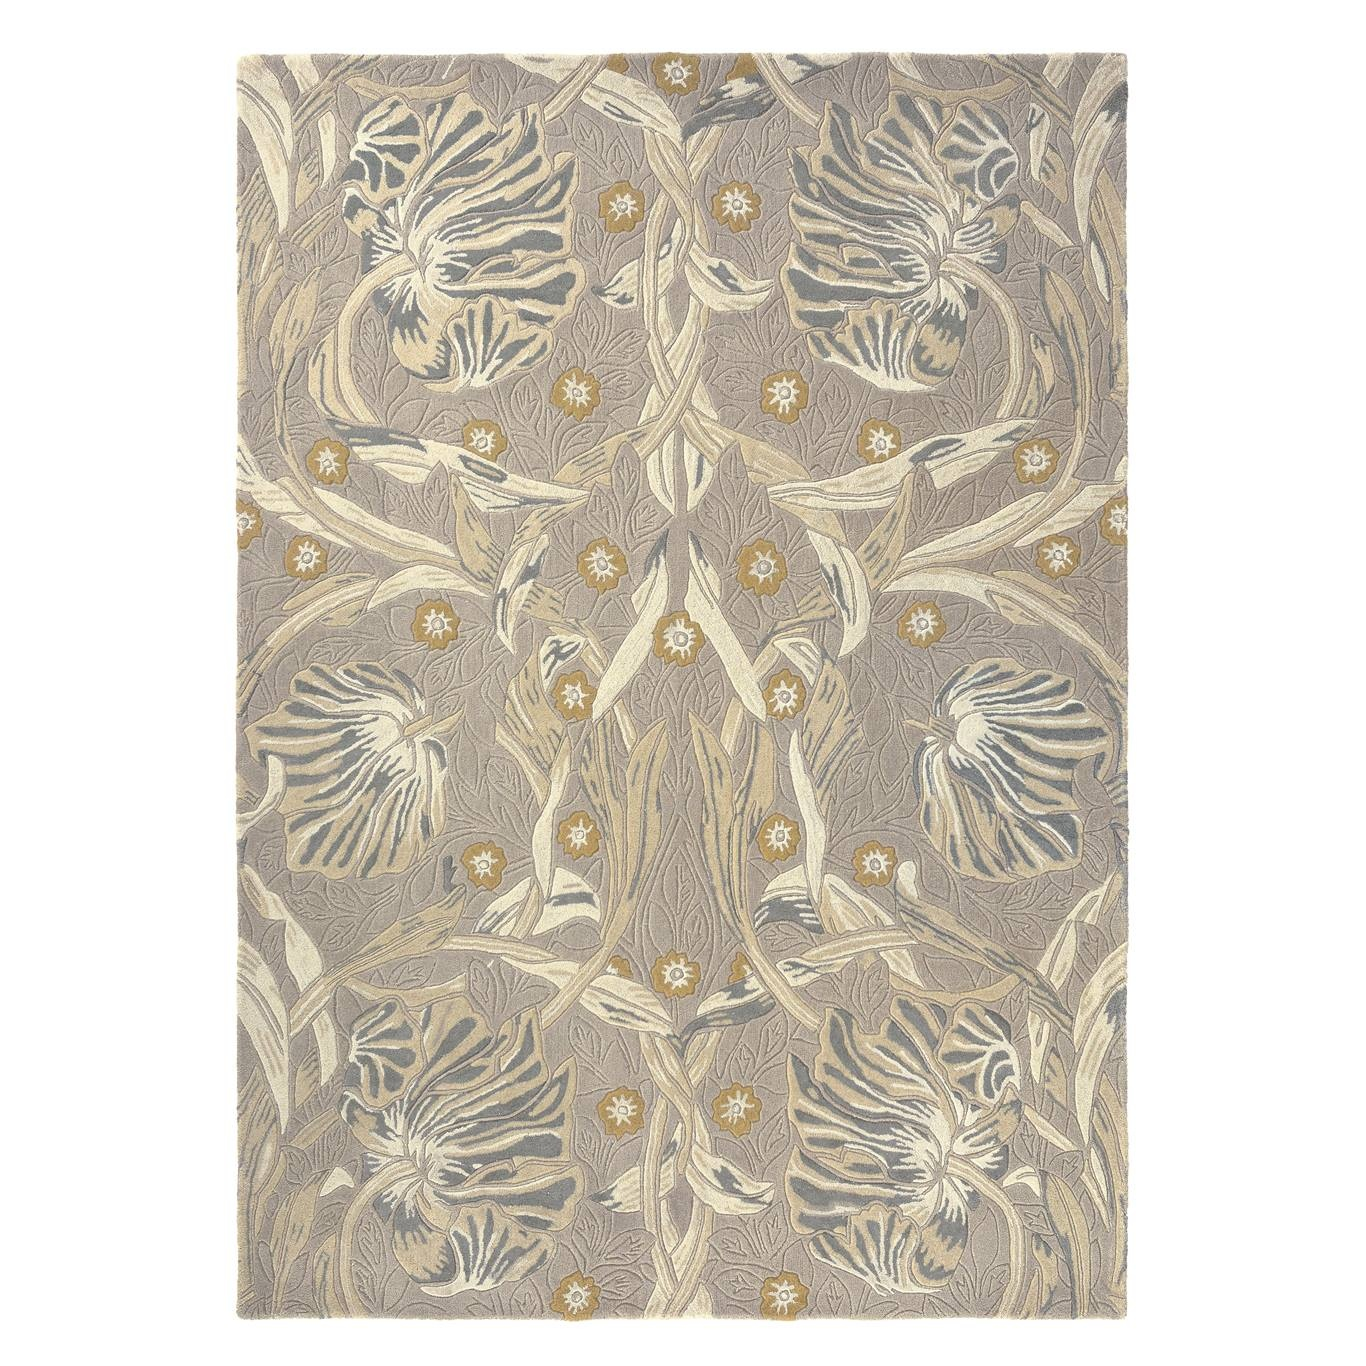 Image of Morris & Co Pure Pimpernel Rug 28105